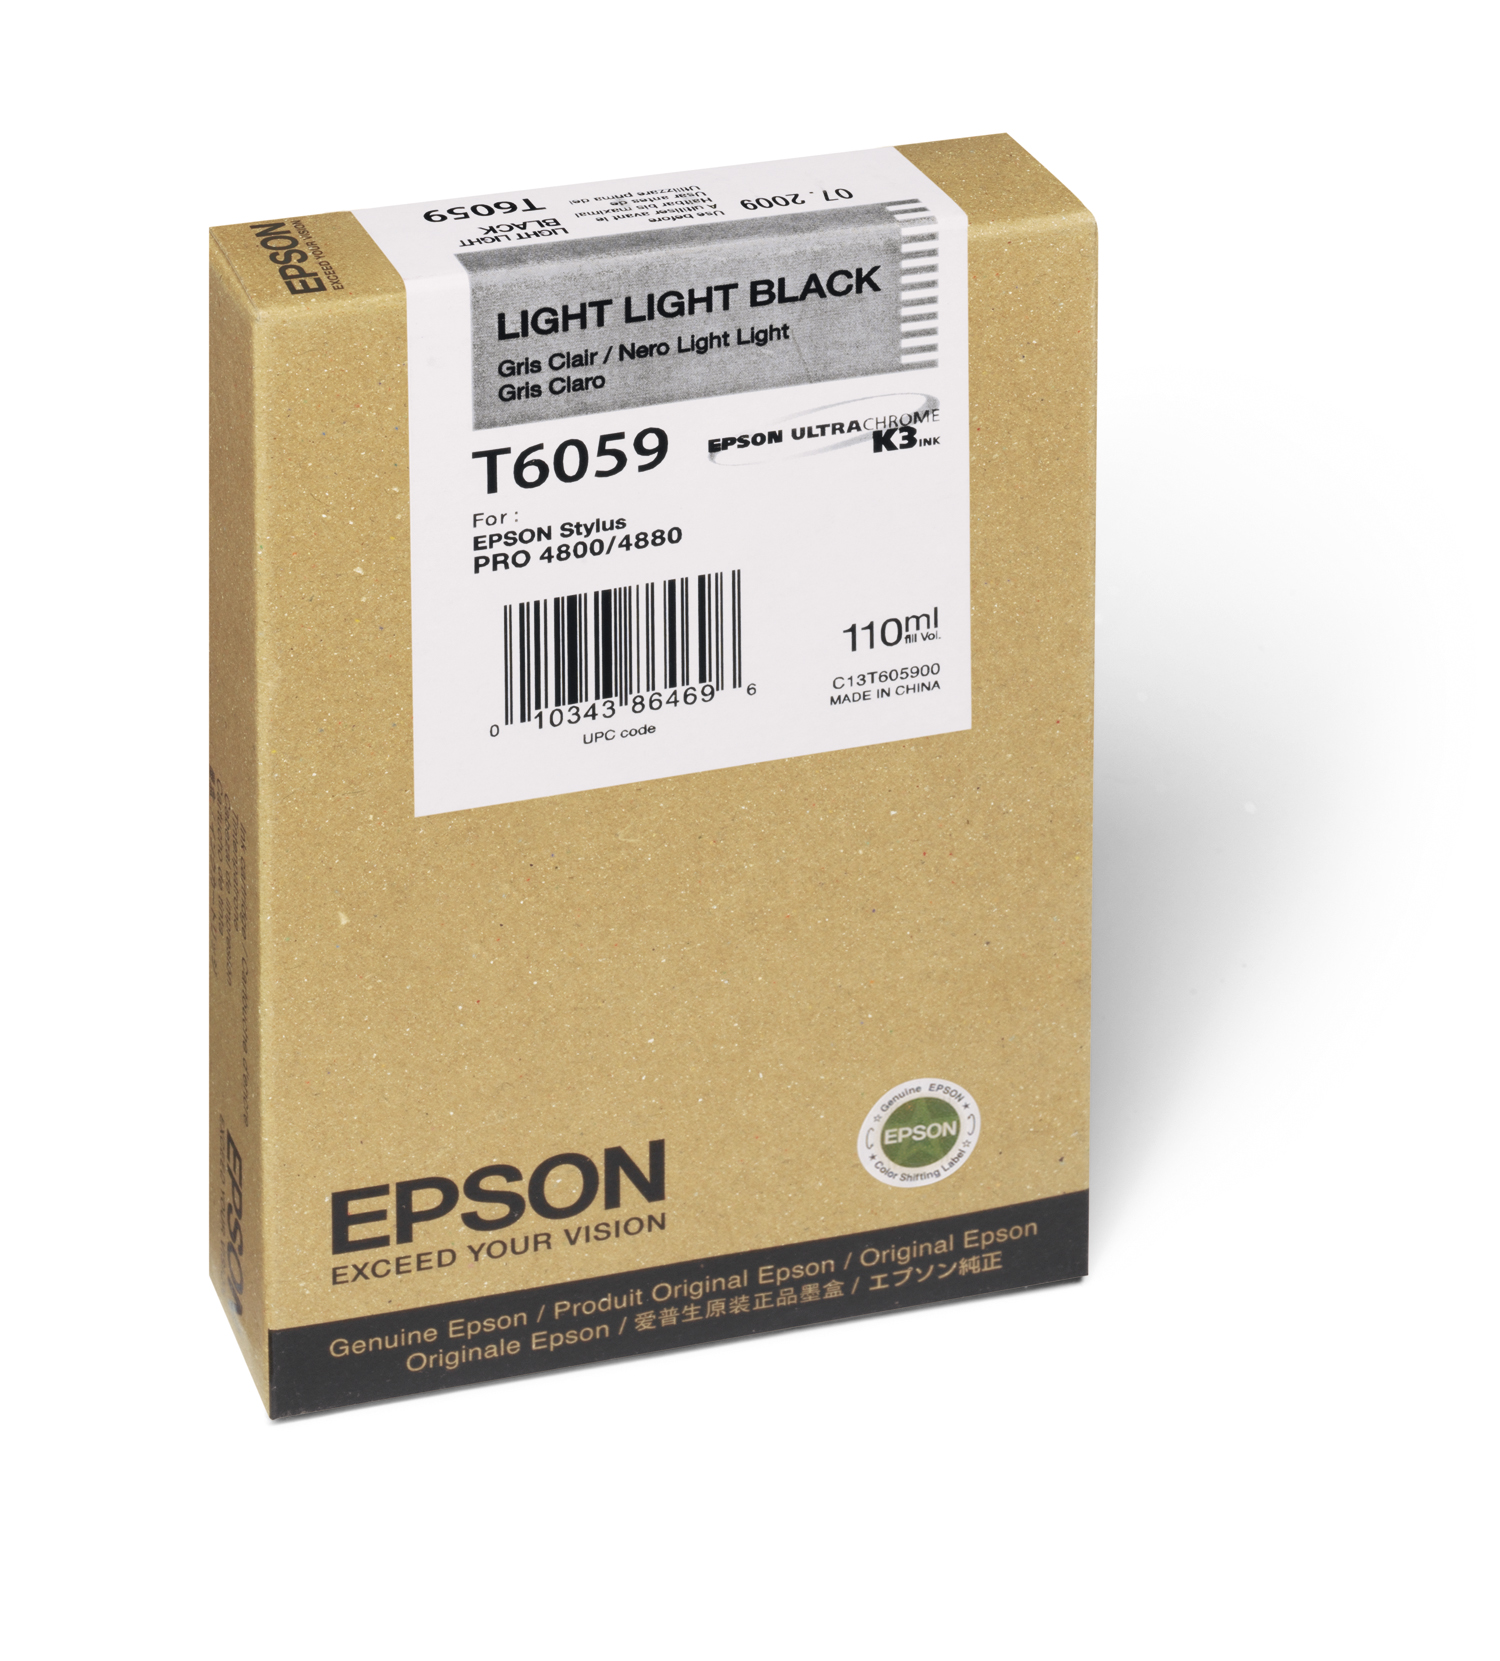 Epson 4800/4880 Light Light Black Ink UltraChrome (110ml) (T605900)